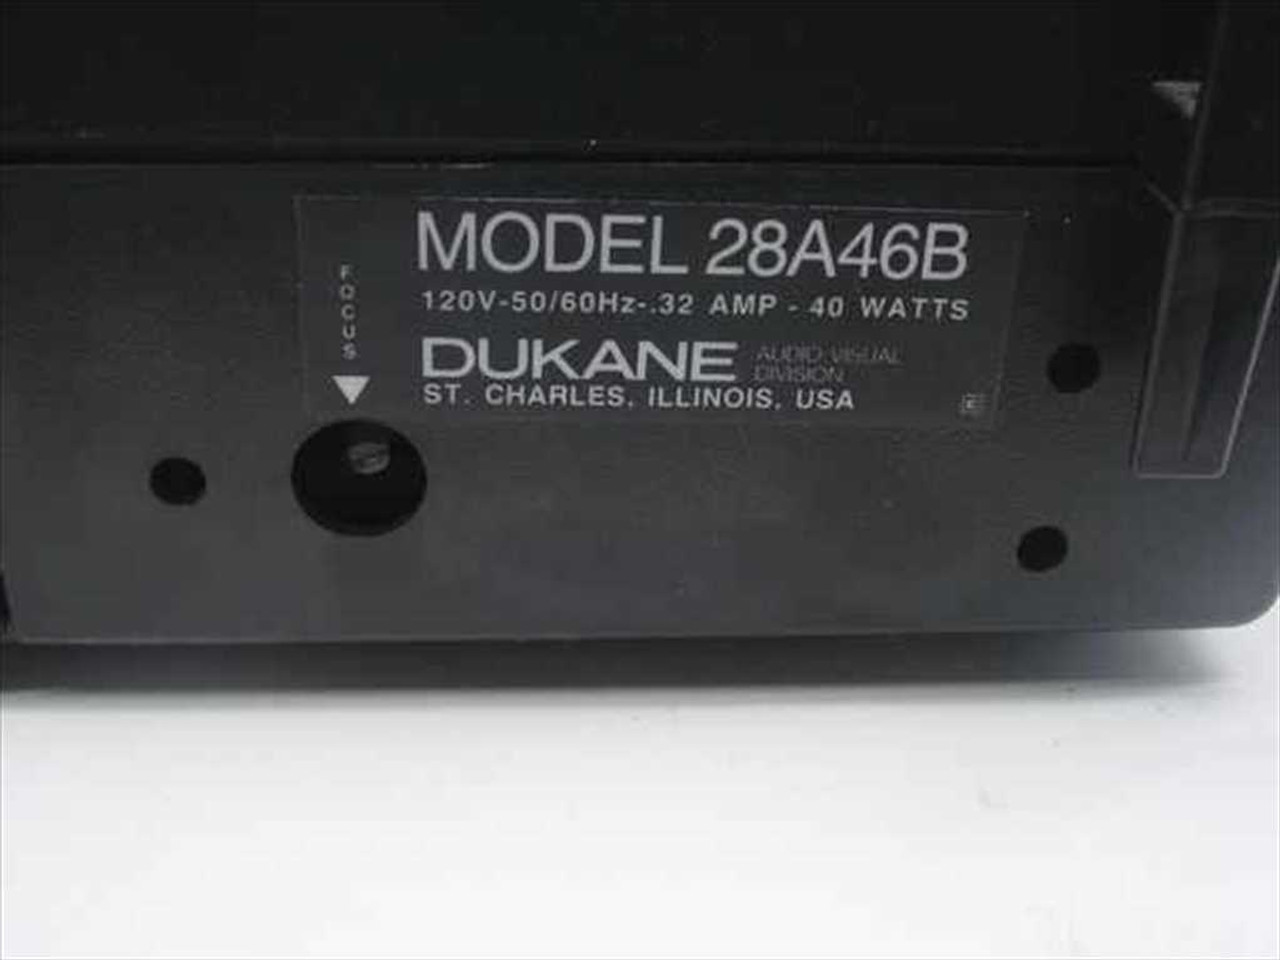 medium resolution of  dukane 28a46b portable film viewer audio tape deck as is for repair